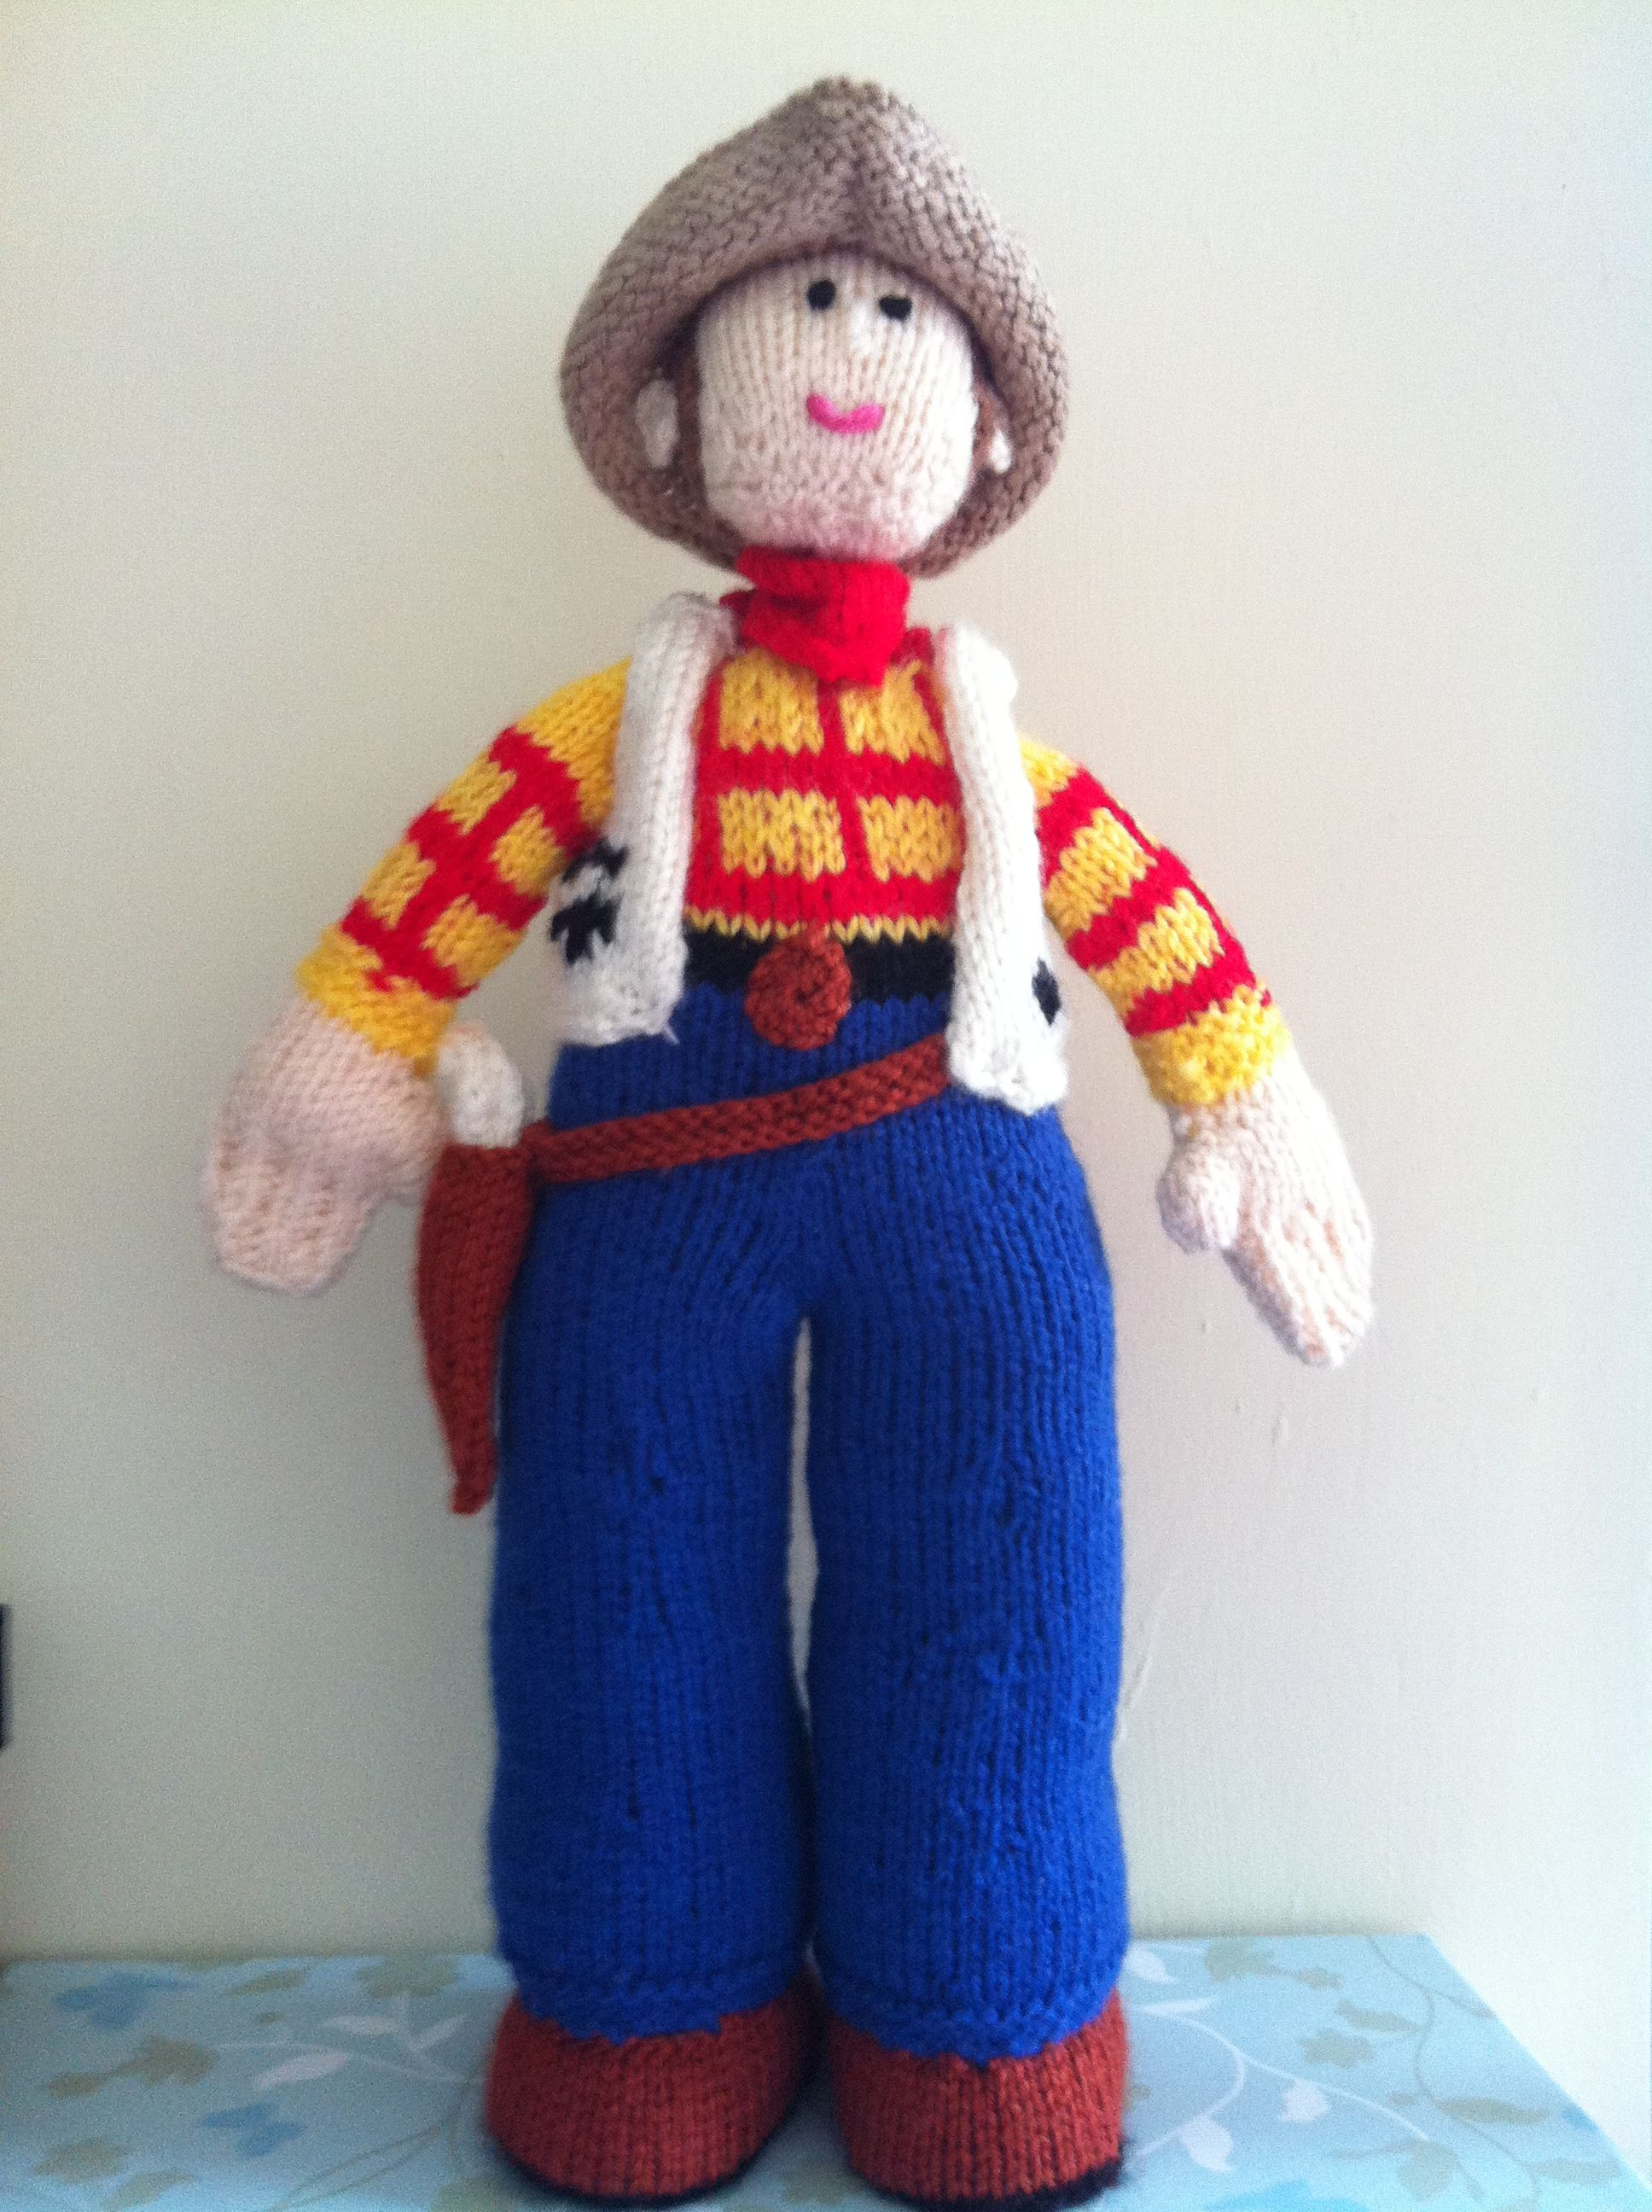 Toy Story Knitting Patterns Woody : Woody - Toy Story adapted from Alan Darts cowboy pattern My hand knit ...